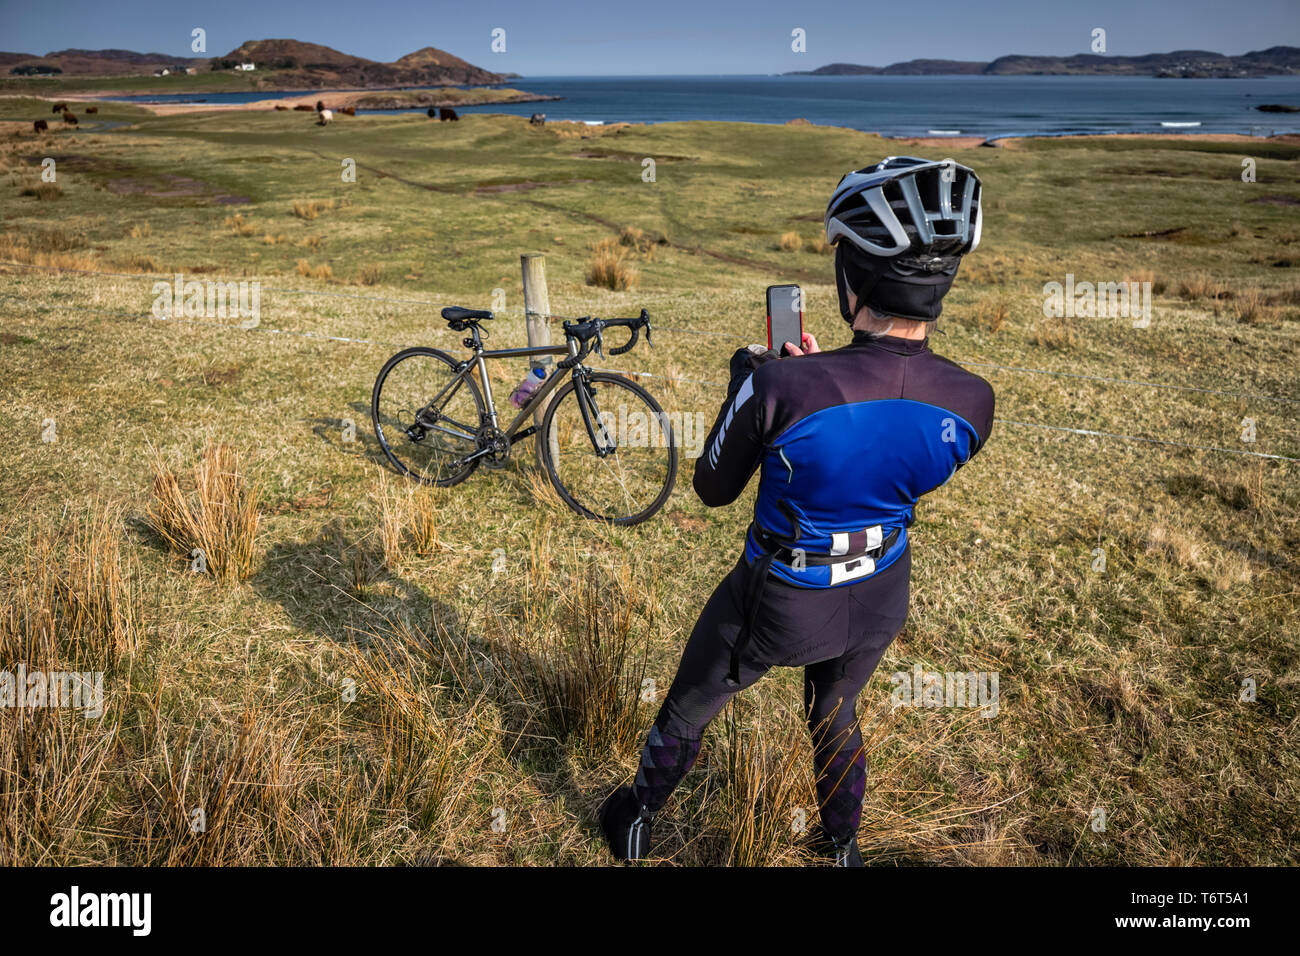 Female cyclist captures the beauty of the landscape along Loch Ewe, Poolewe, west coast of Scotland, UK. Stock Photo